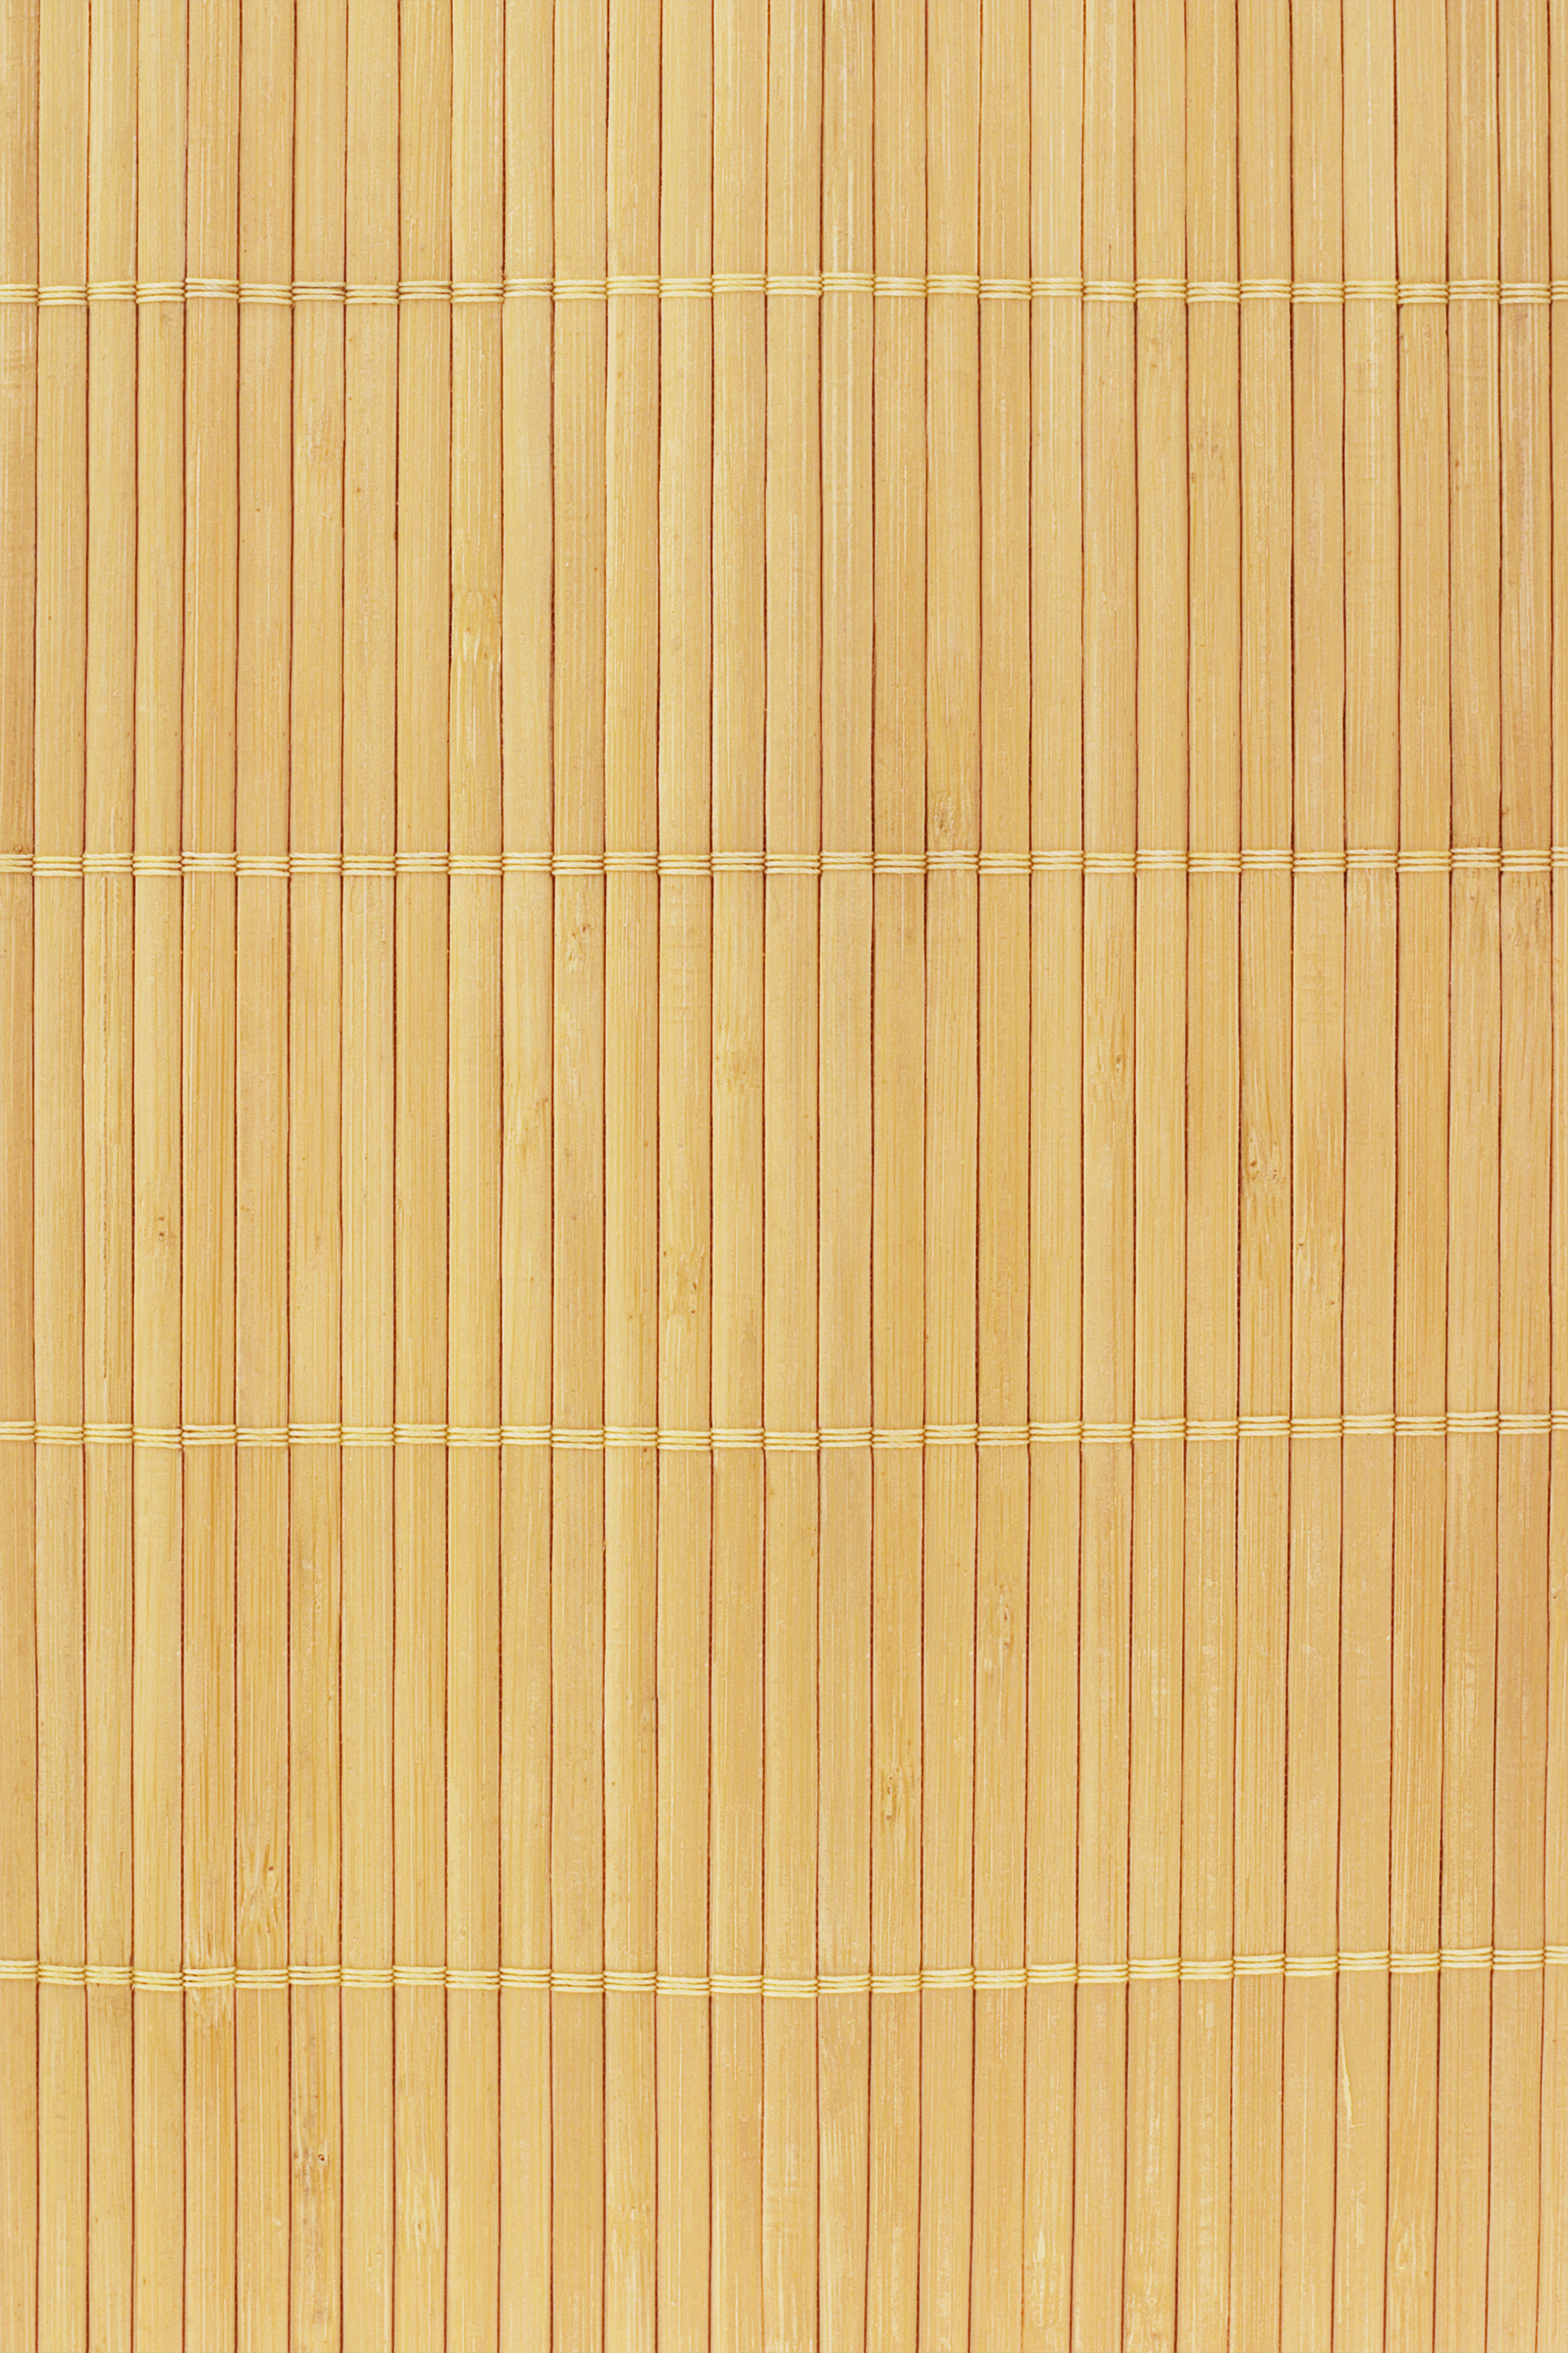 Green Bamboo Wood Texture - Bamboo Texture Pattern Wooden Plank Floor Wood By Texturex Com Muou